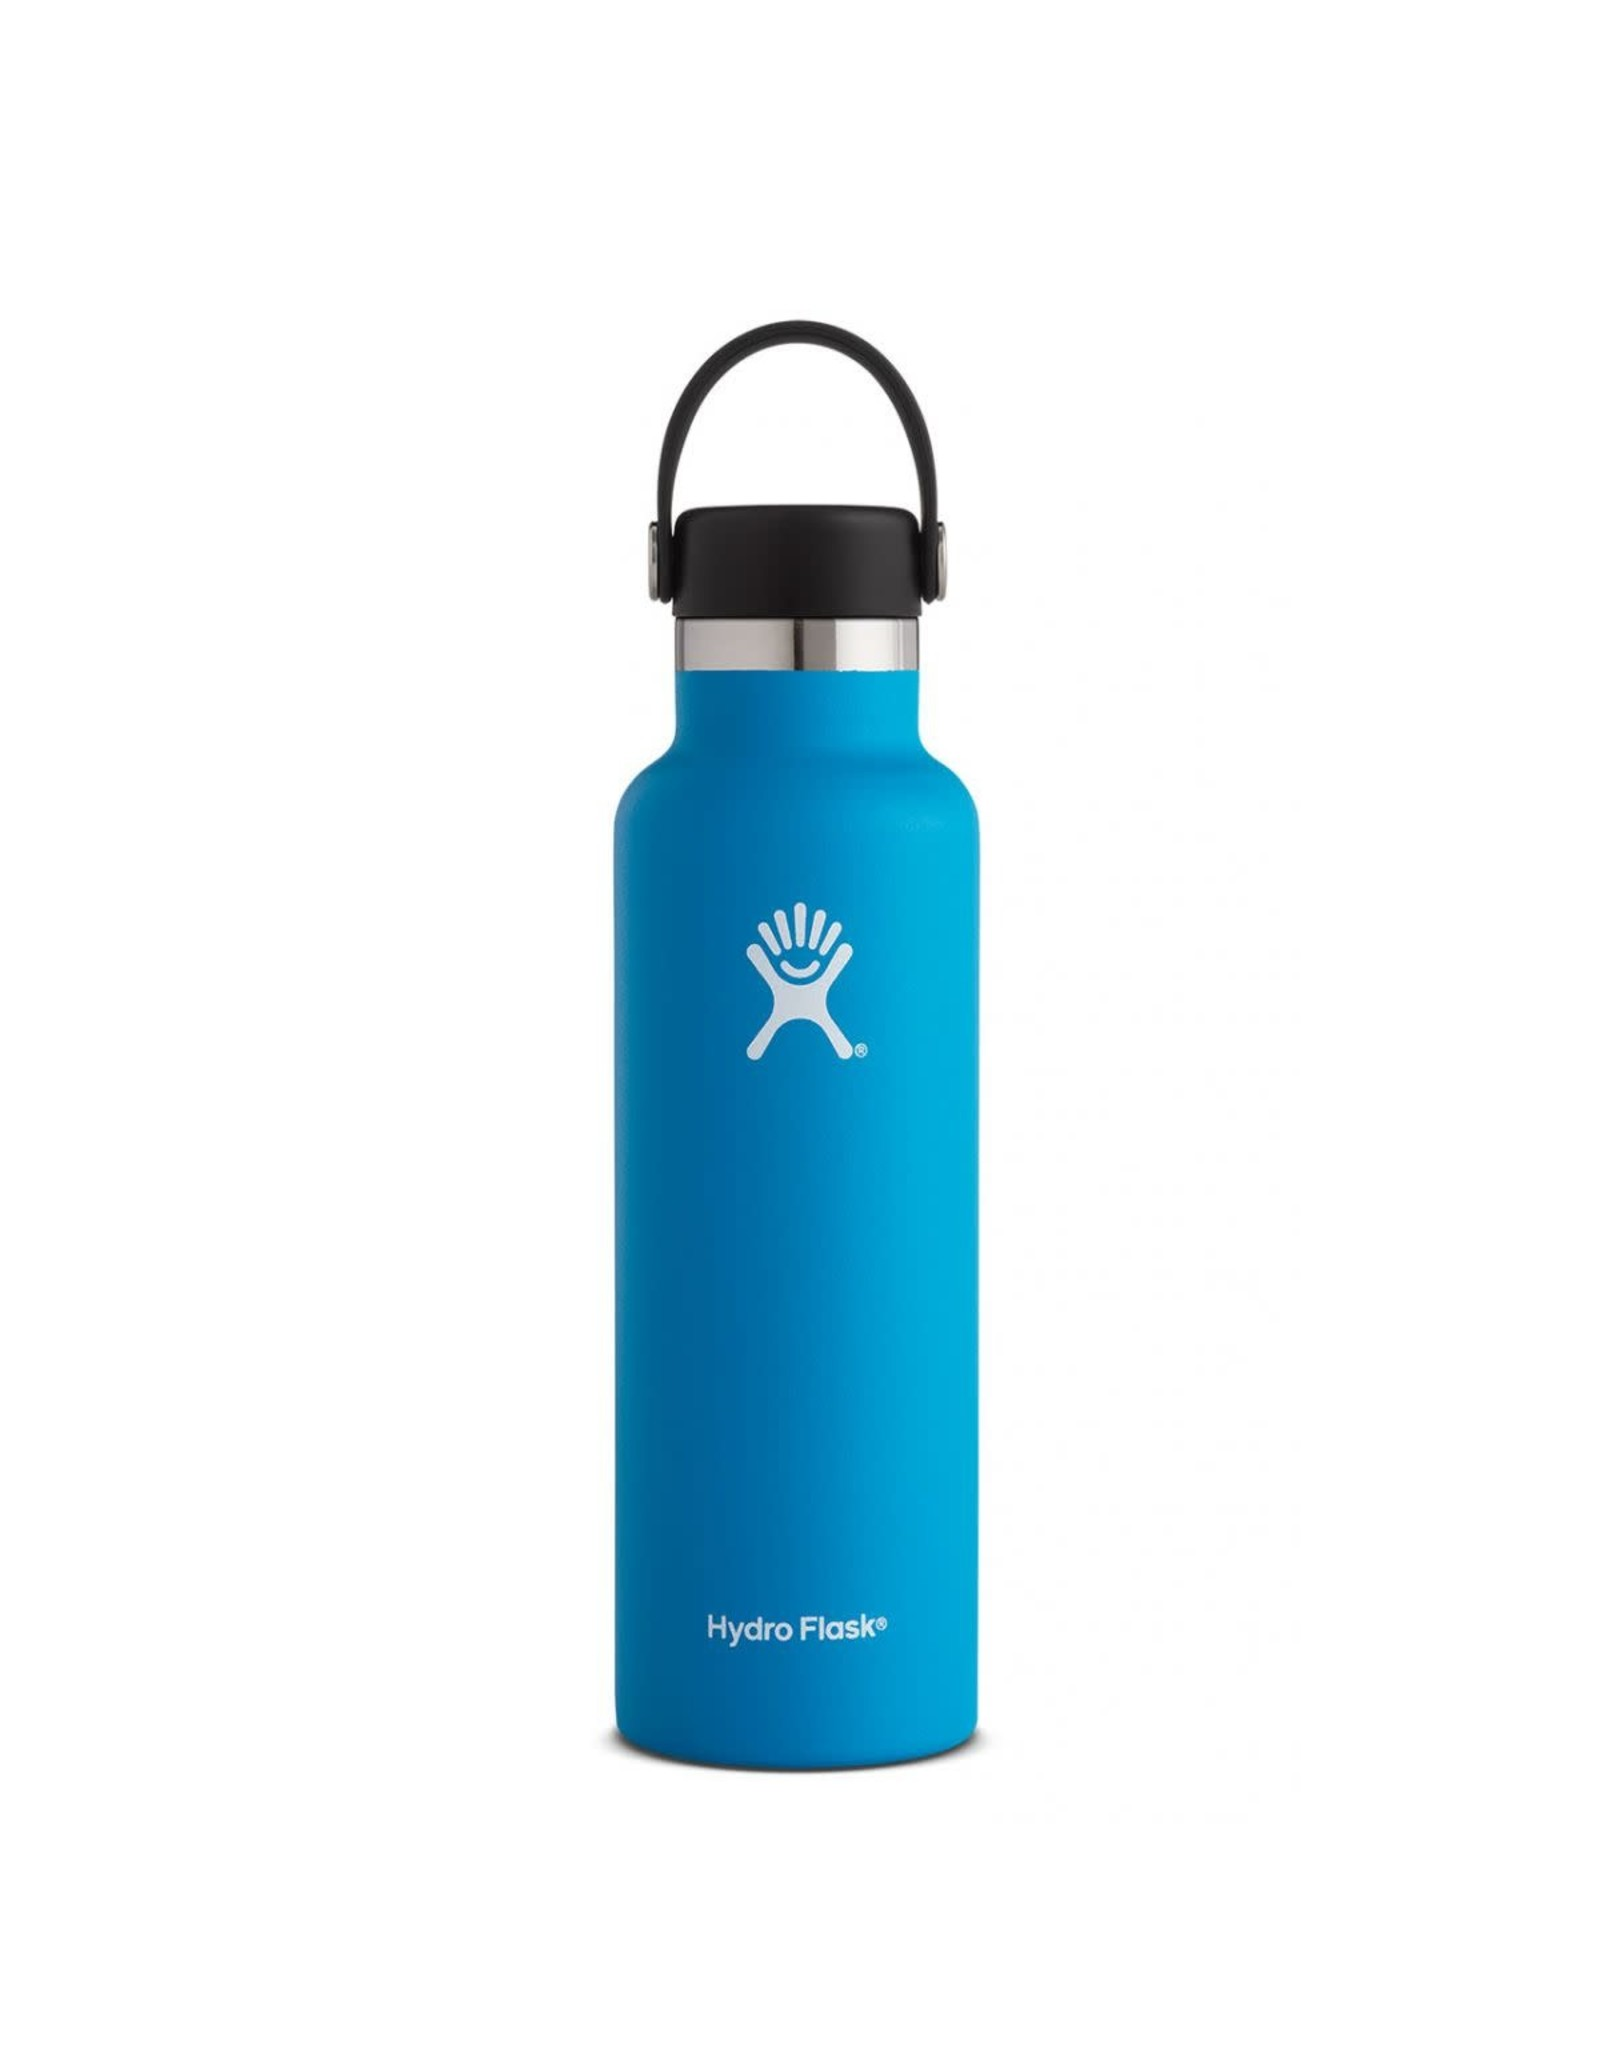 Hydro Flask Hydro Flask 21oz Standard Mouth Pacific